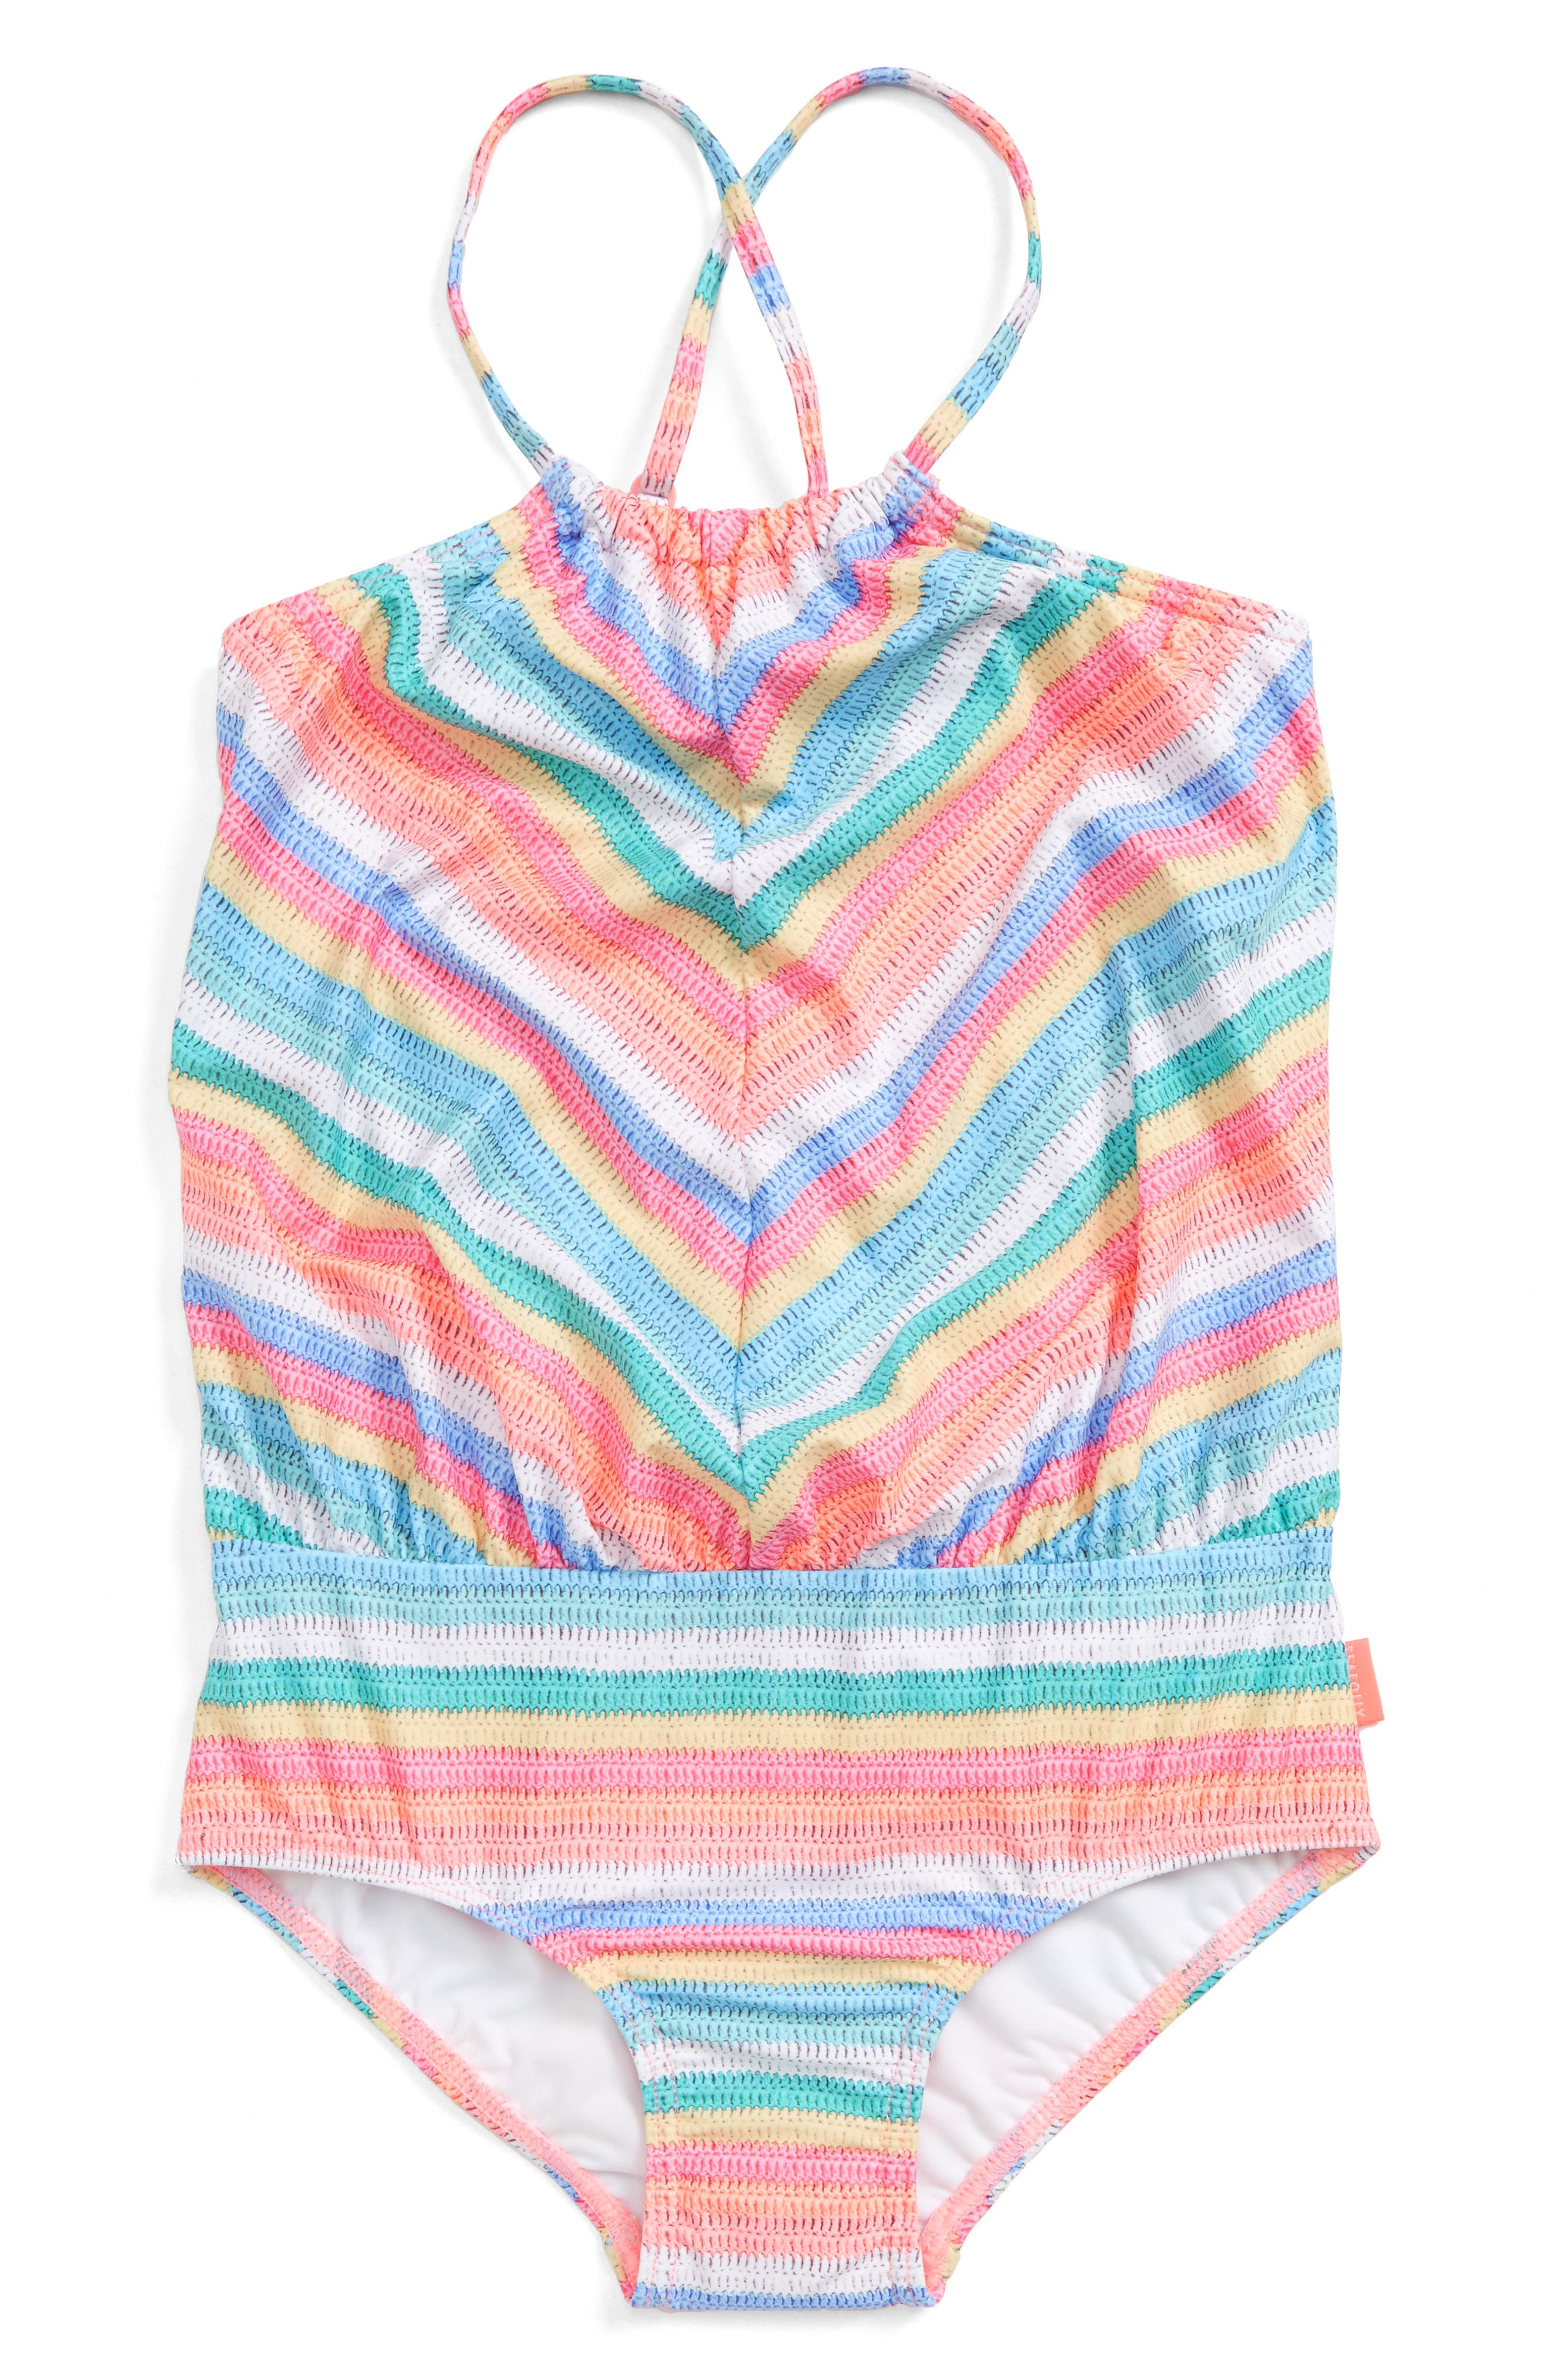 Candy Pop One-Piece Swimsuit,                         Main,                         color, Candy Stripe